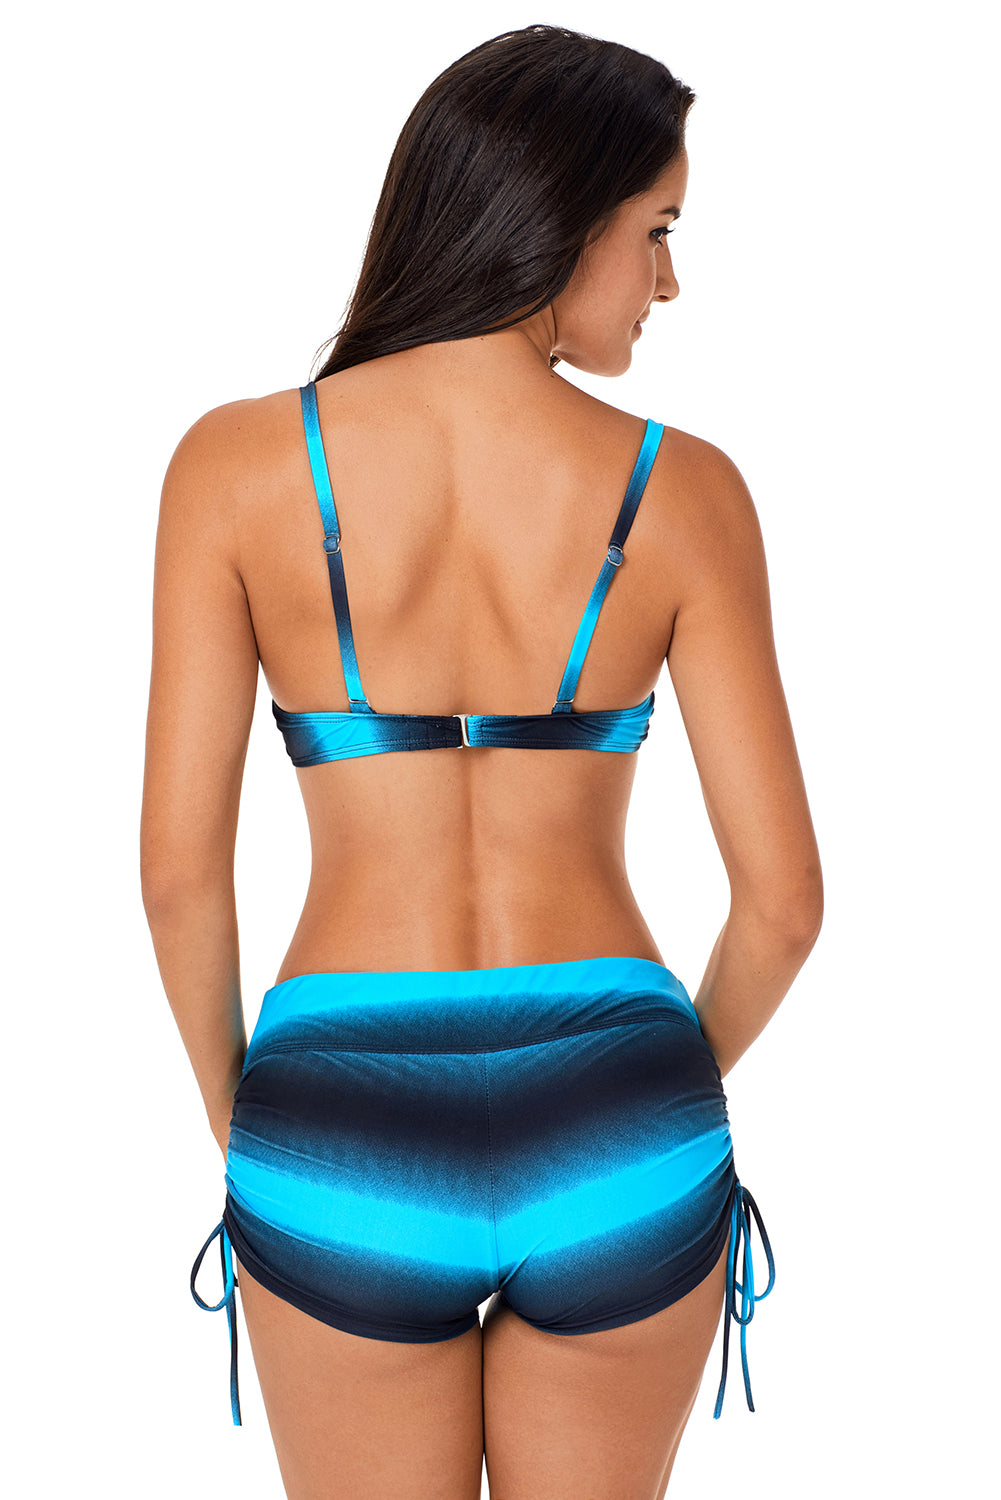 Blue Black Gradient Print Two Piece Swimsuit